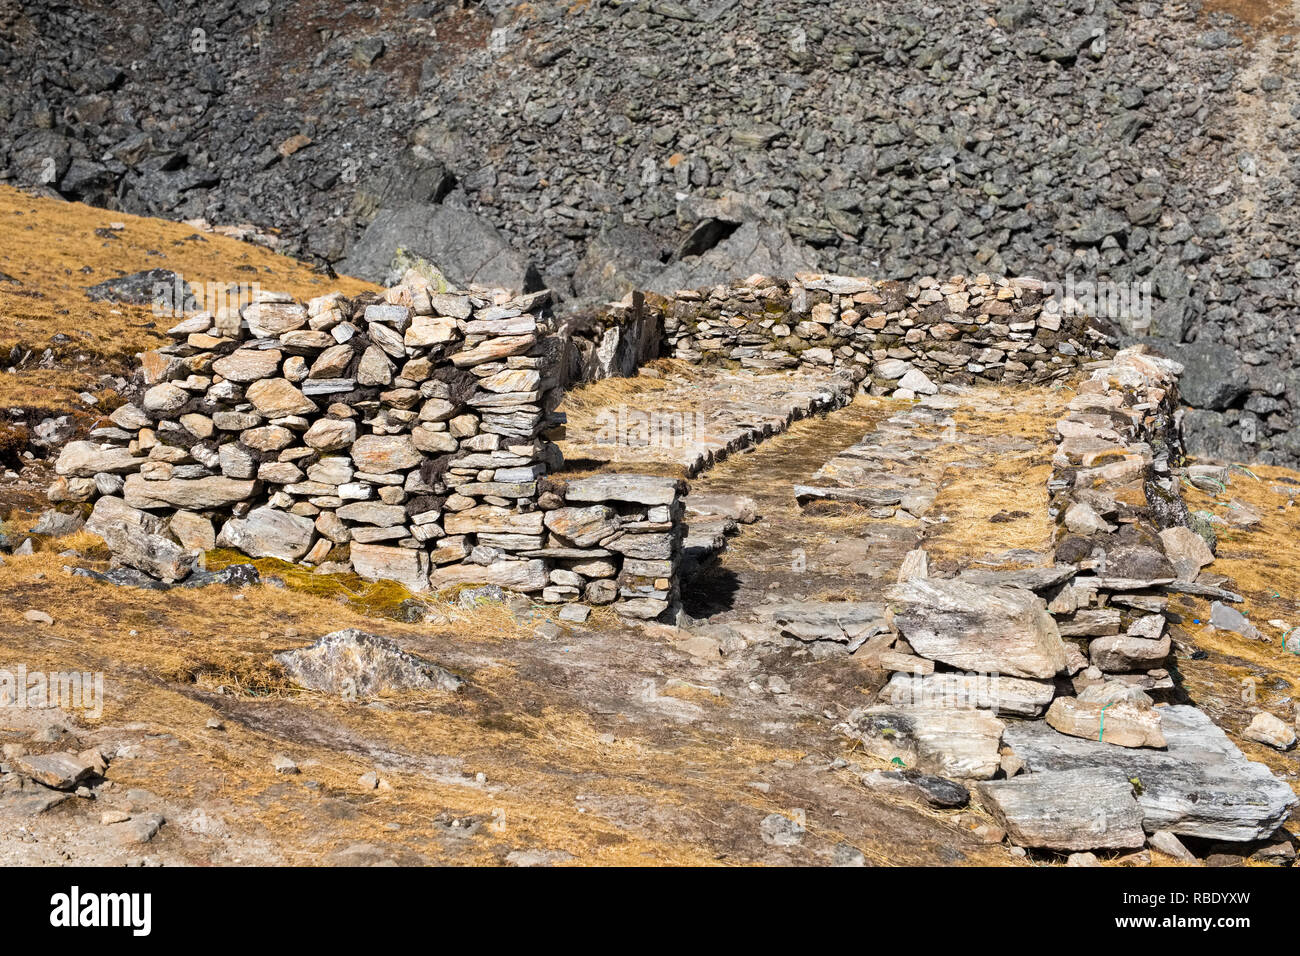 roofless stone pilgrim's shelters on the trek to the sacred Gosaikund / Gosainkund / Gosaikunda lakes - Stock Image